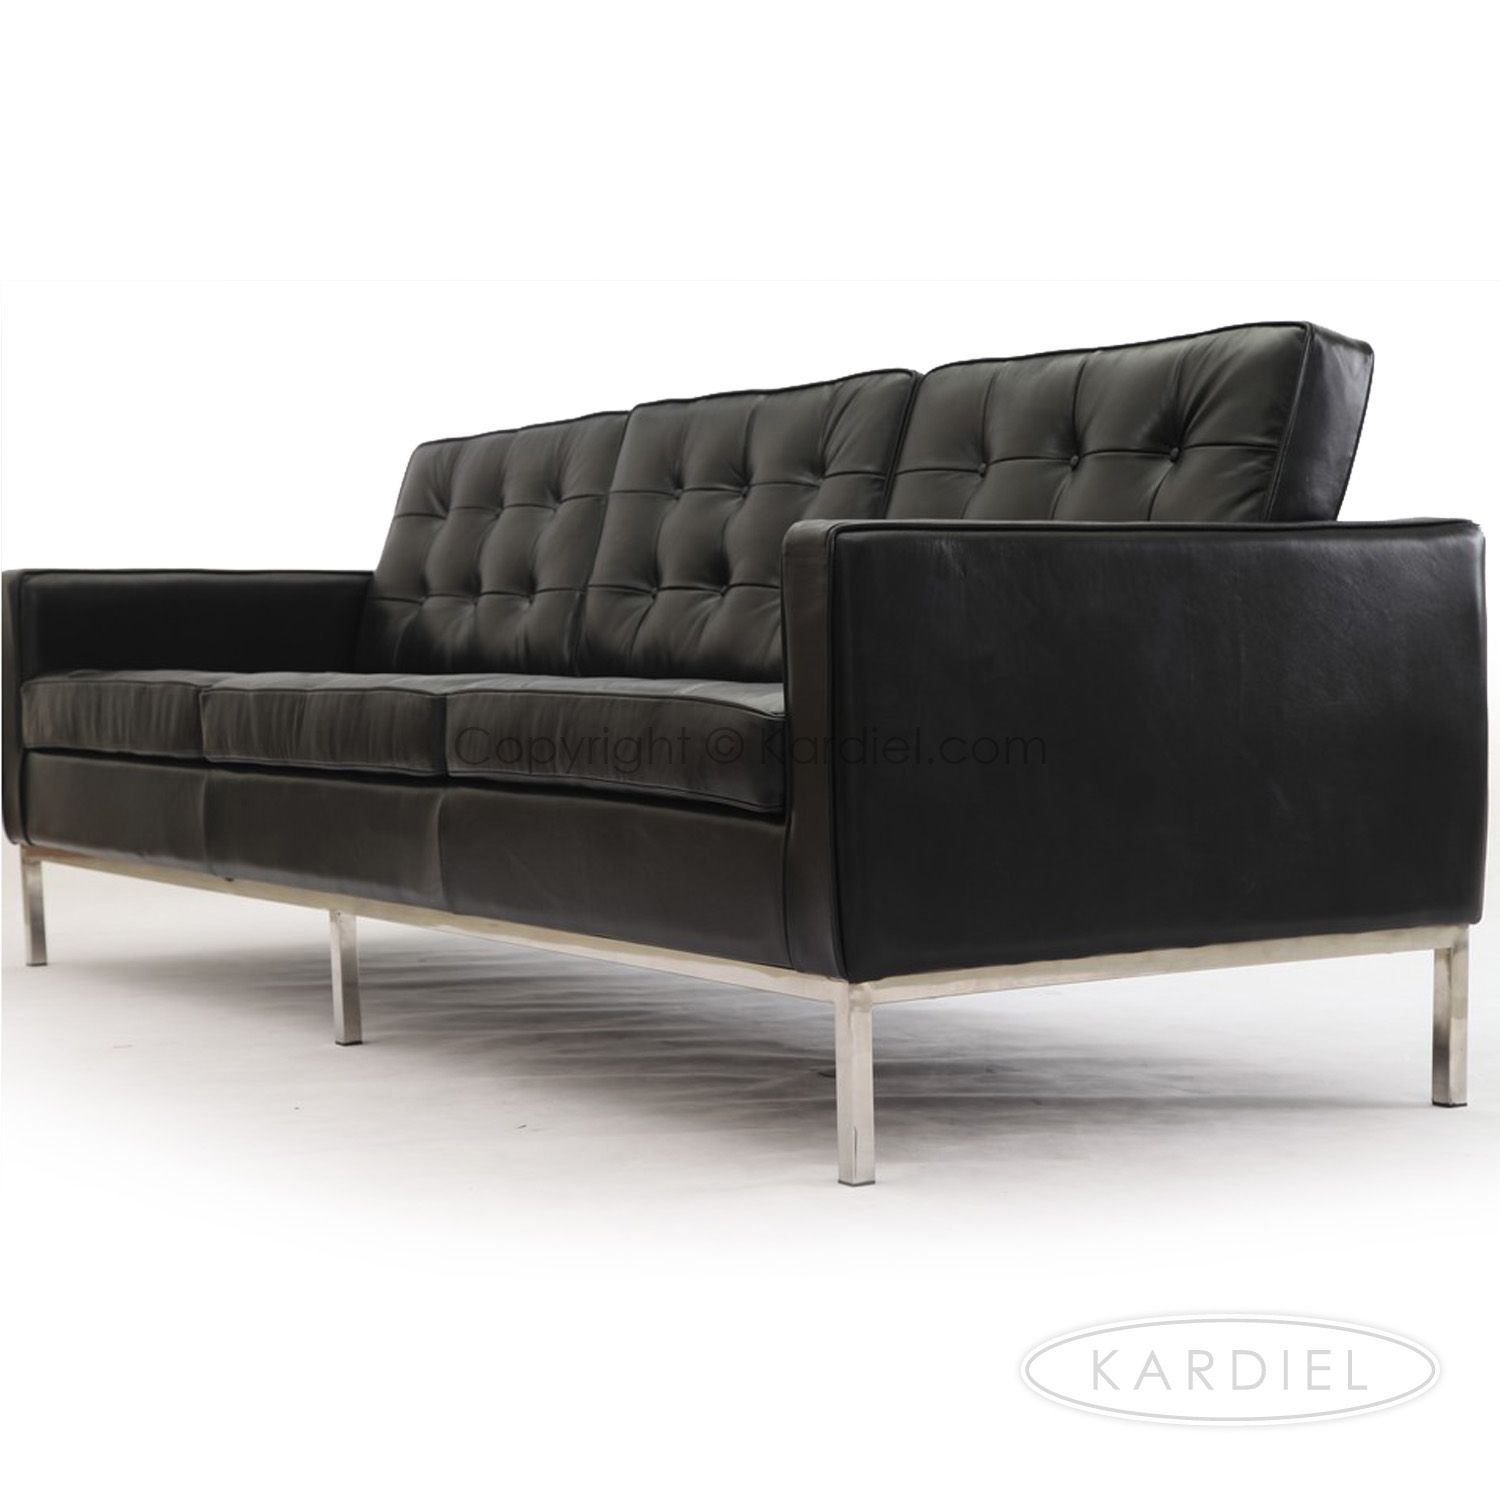 Terrific Florence Knoll Sofa Settee Reproduction Style 3 Seater Download Free Architecture Designs Scobabritishbridgeorg